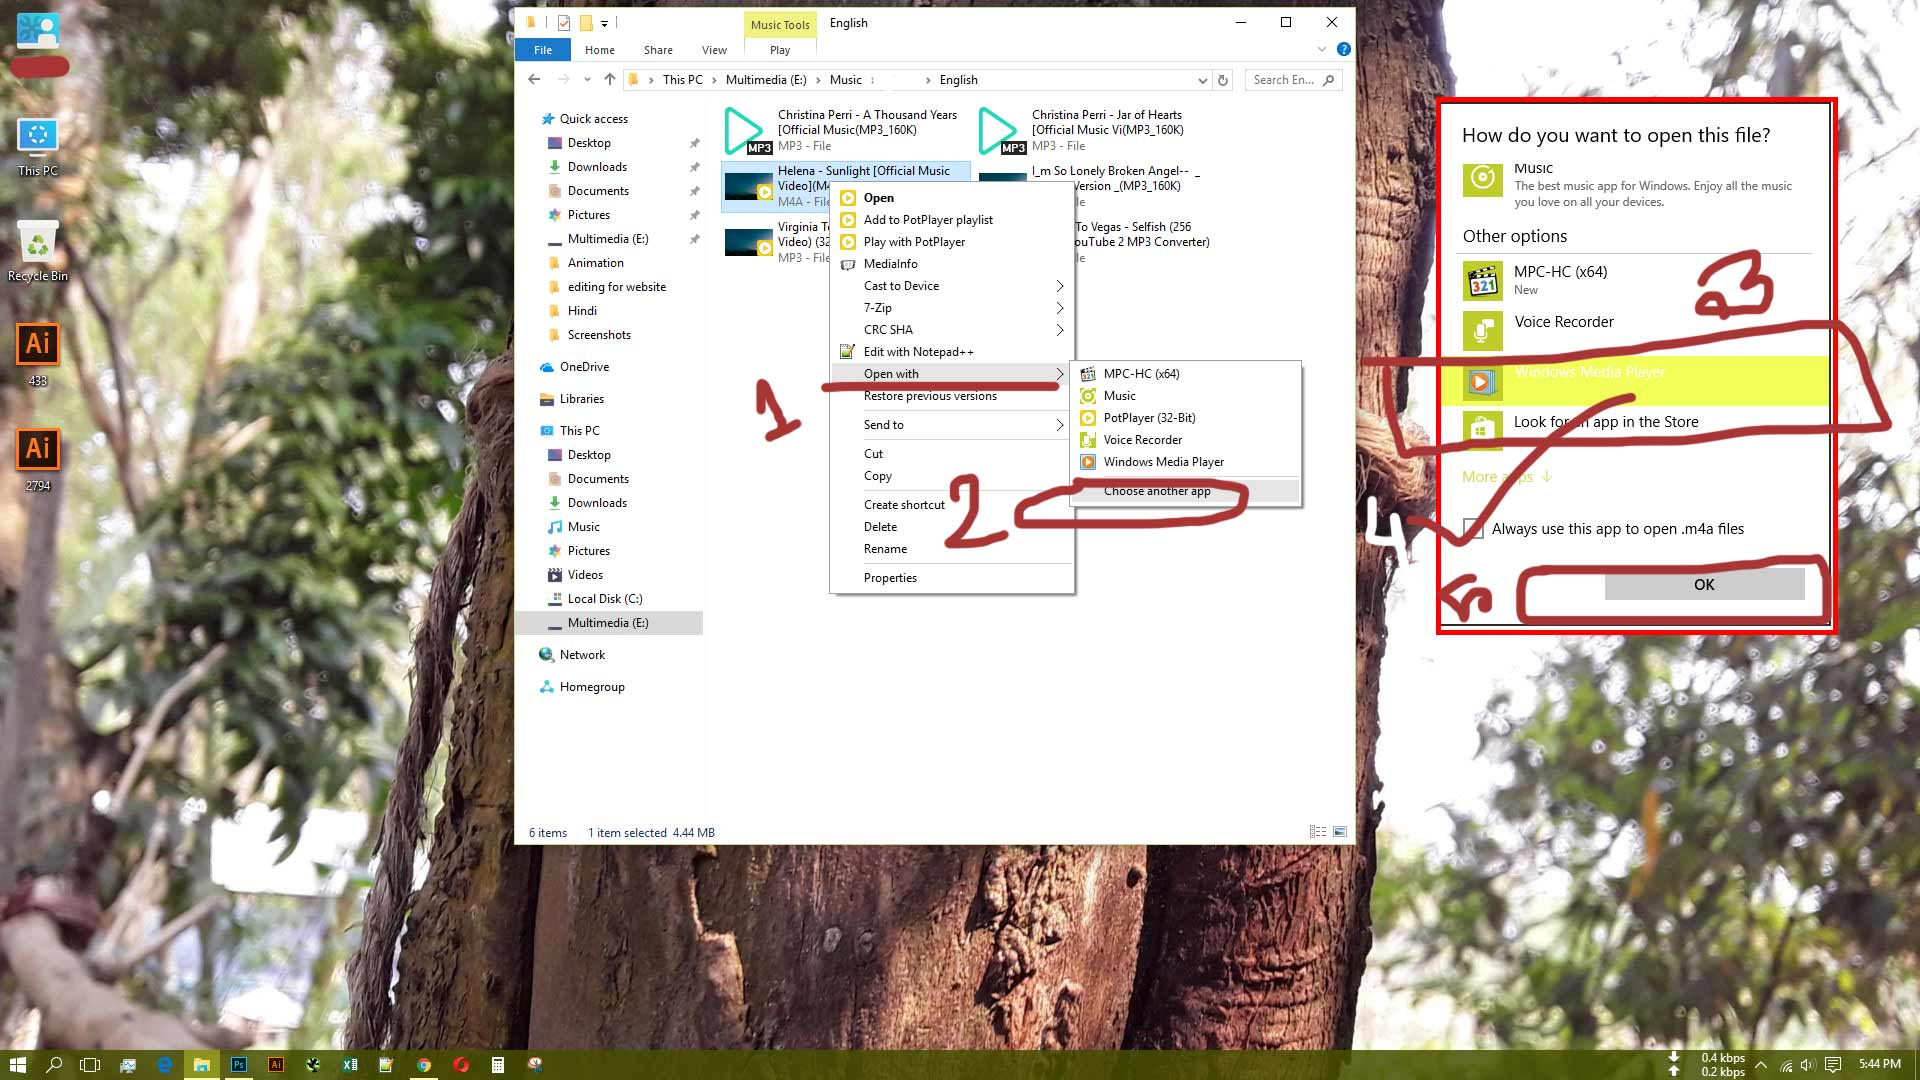 How Do I Make Windows Media Player My Default Player In Windows 10